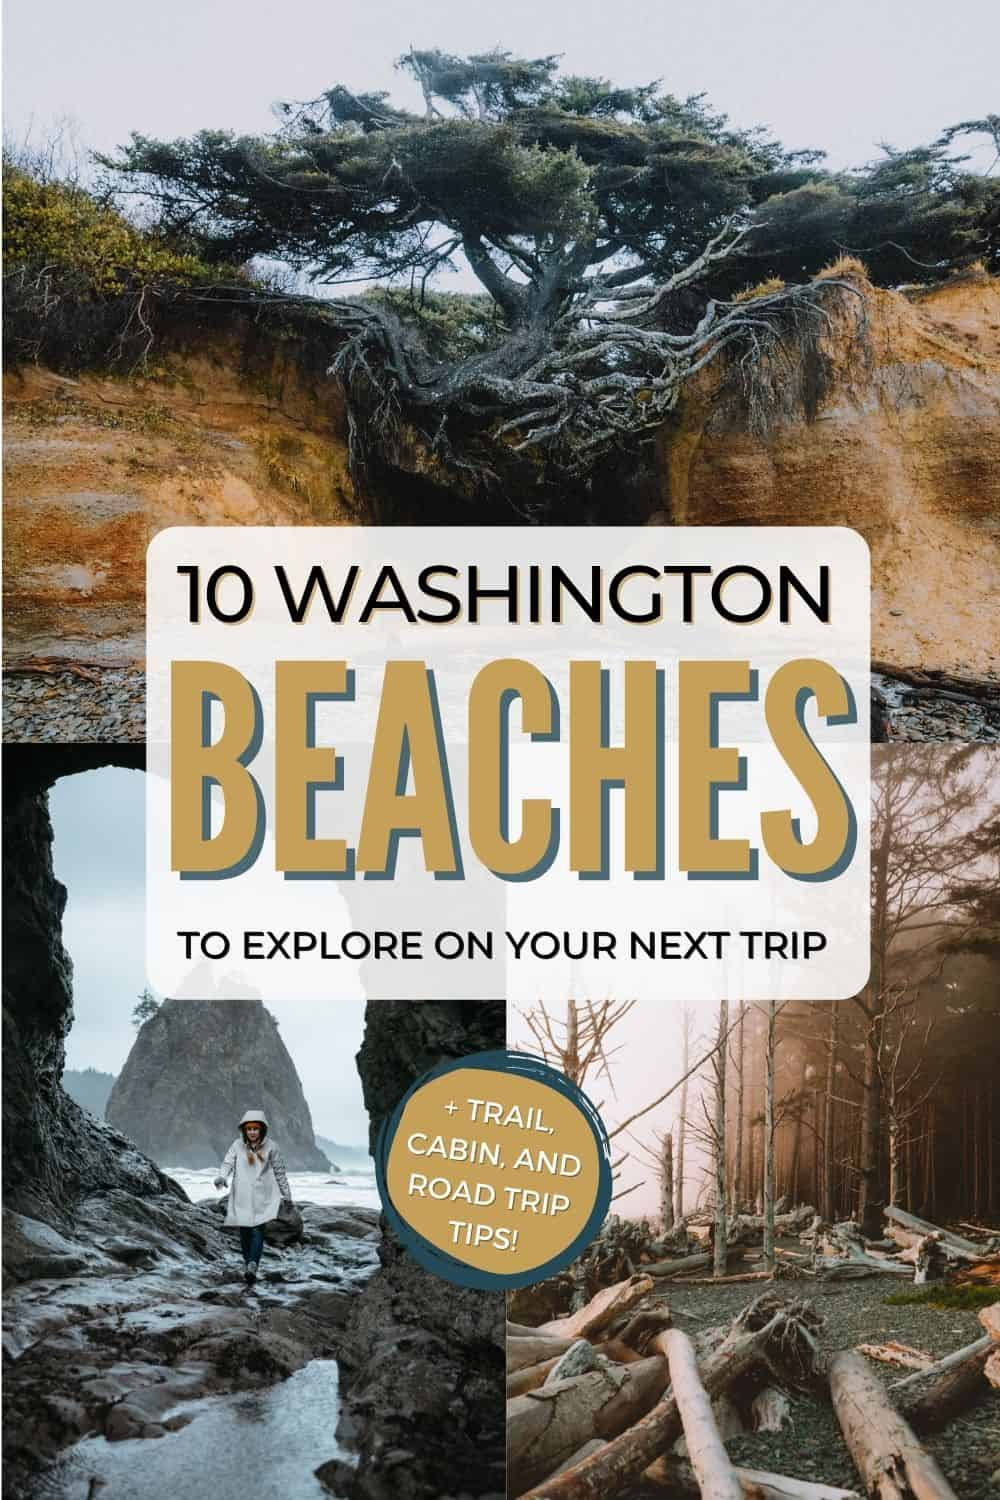 Looking for the best beaches in Washington state? We're coving the best Washington Beaches, including Cape Flattery, Ruby Beach, Rialto Beach, Kalaloch Beach and so many more in the Olympic National Park! #beach #washington #washingtonstate #olympicpeninsula #olympicnationalpark #PNW #pacificnorthwest